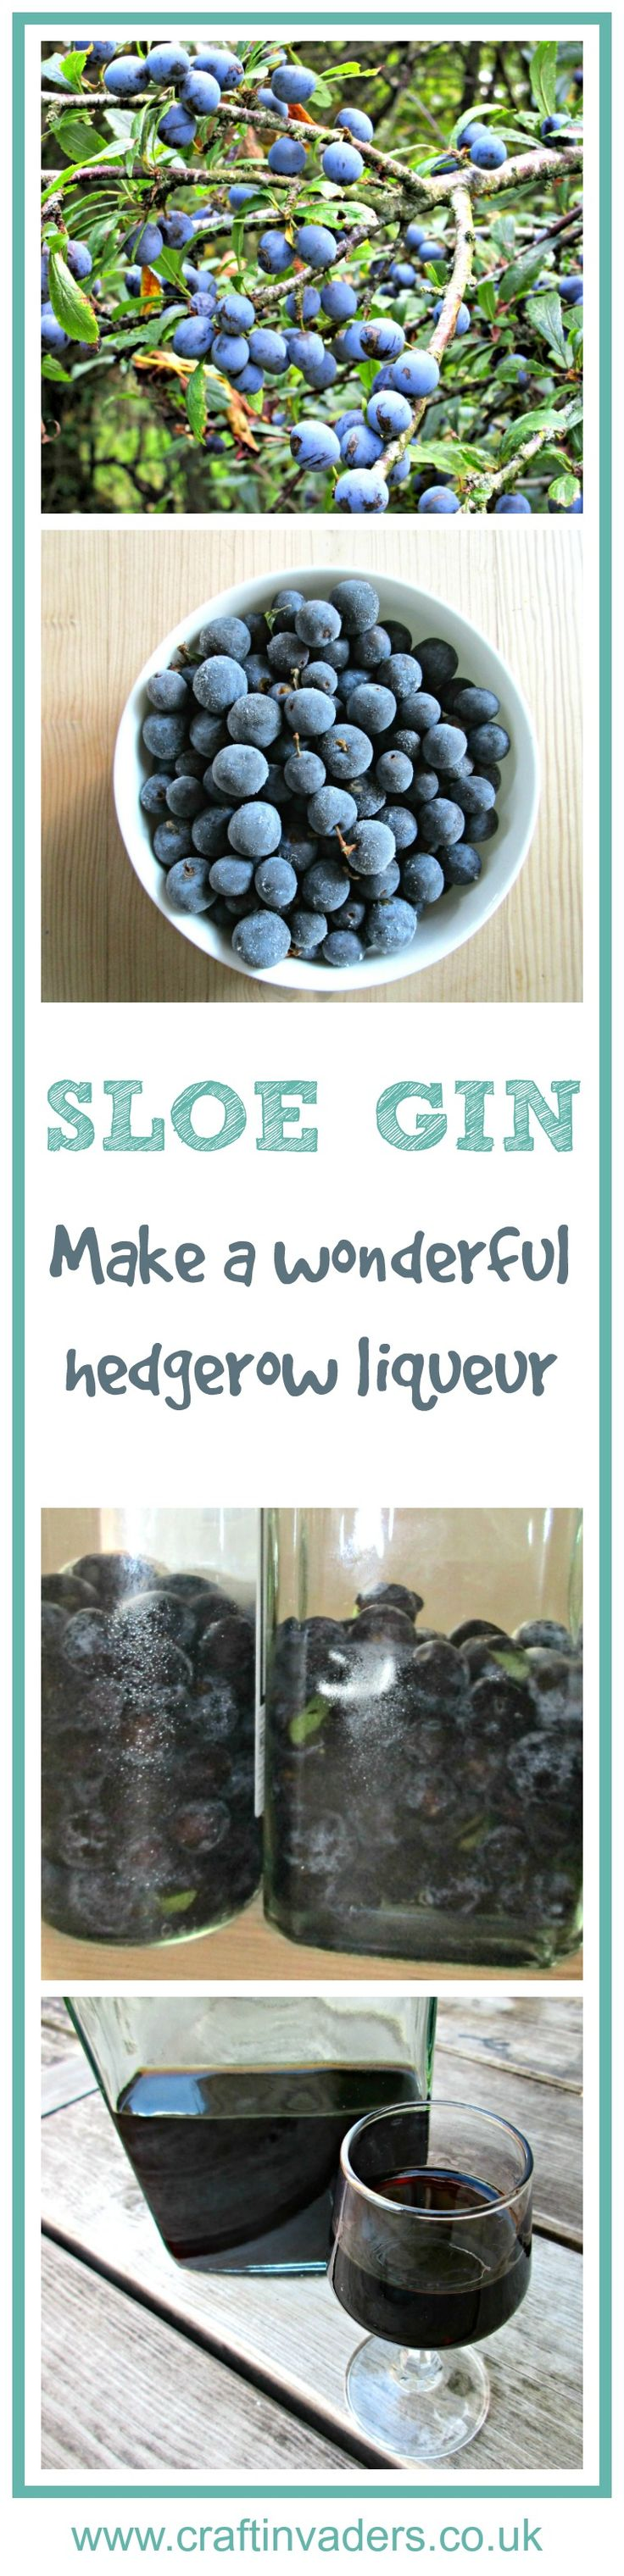 Follow our simple recipe and tips to make a fabulous Sloe Gin. Sloe Gin is easy to make, tastes delicious and makes a perfect home-made present for Christmas.